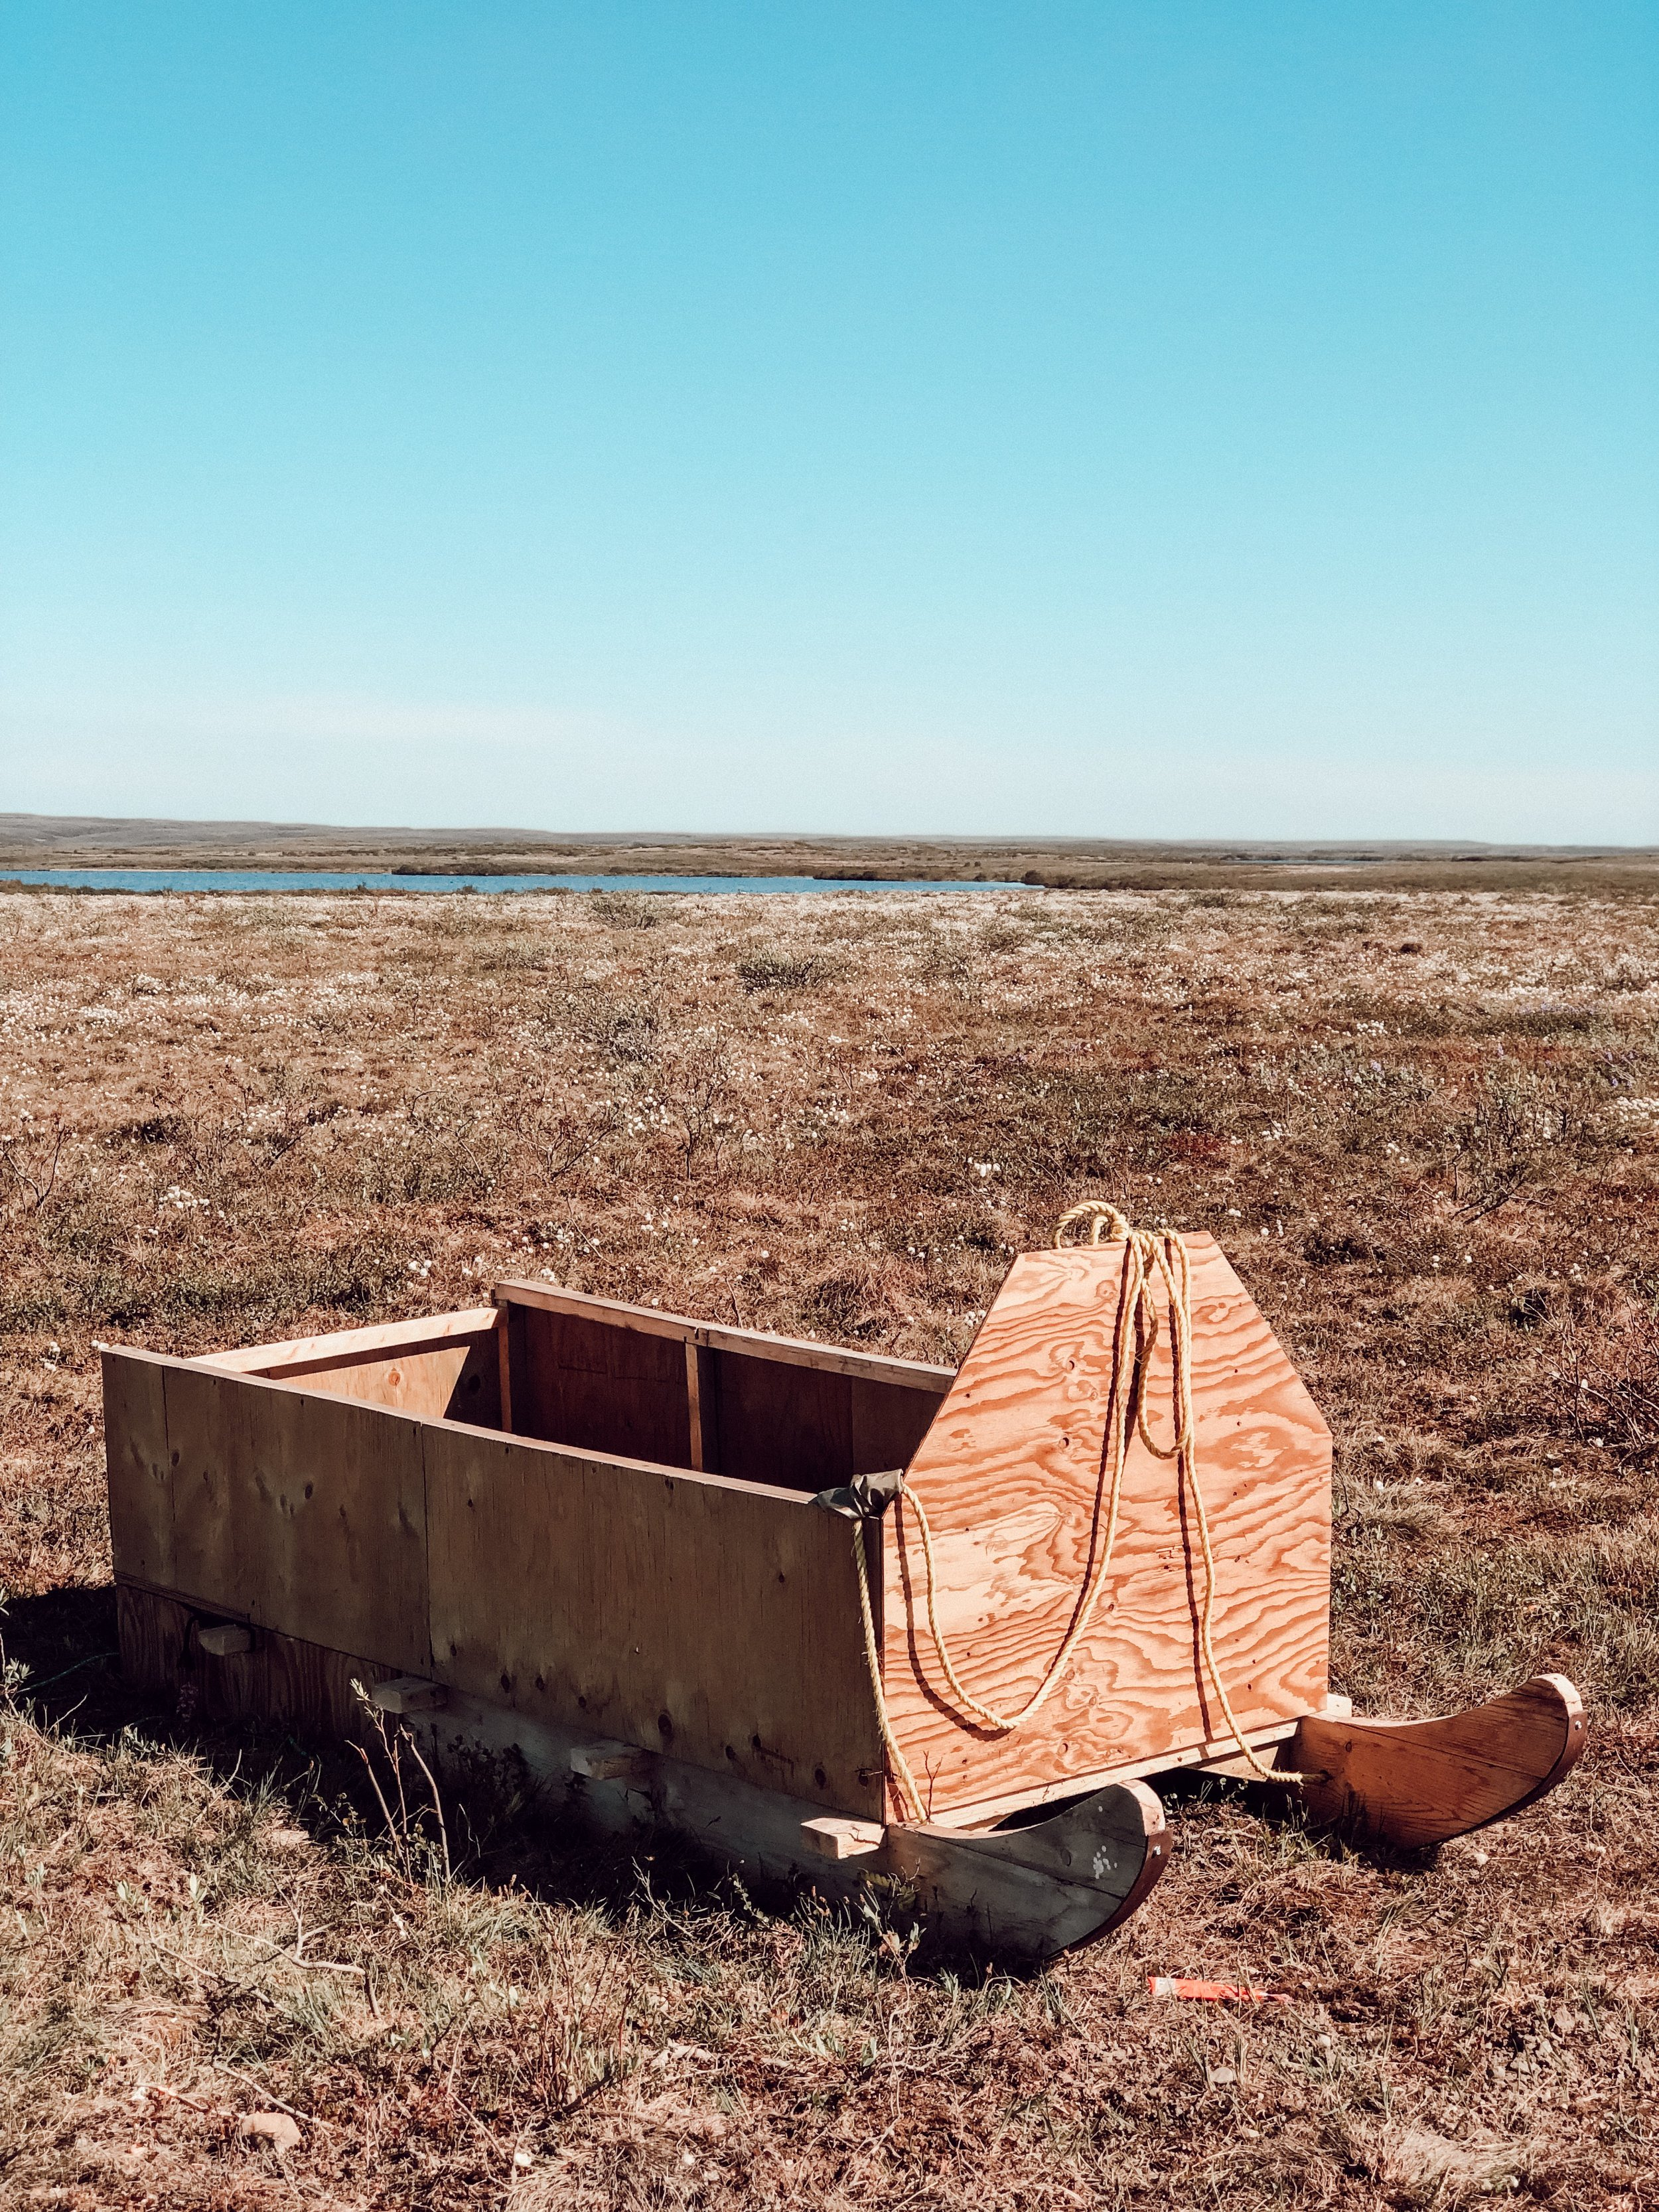 An abandoned sled in the tundra during summer in Canada's arctic